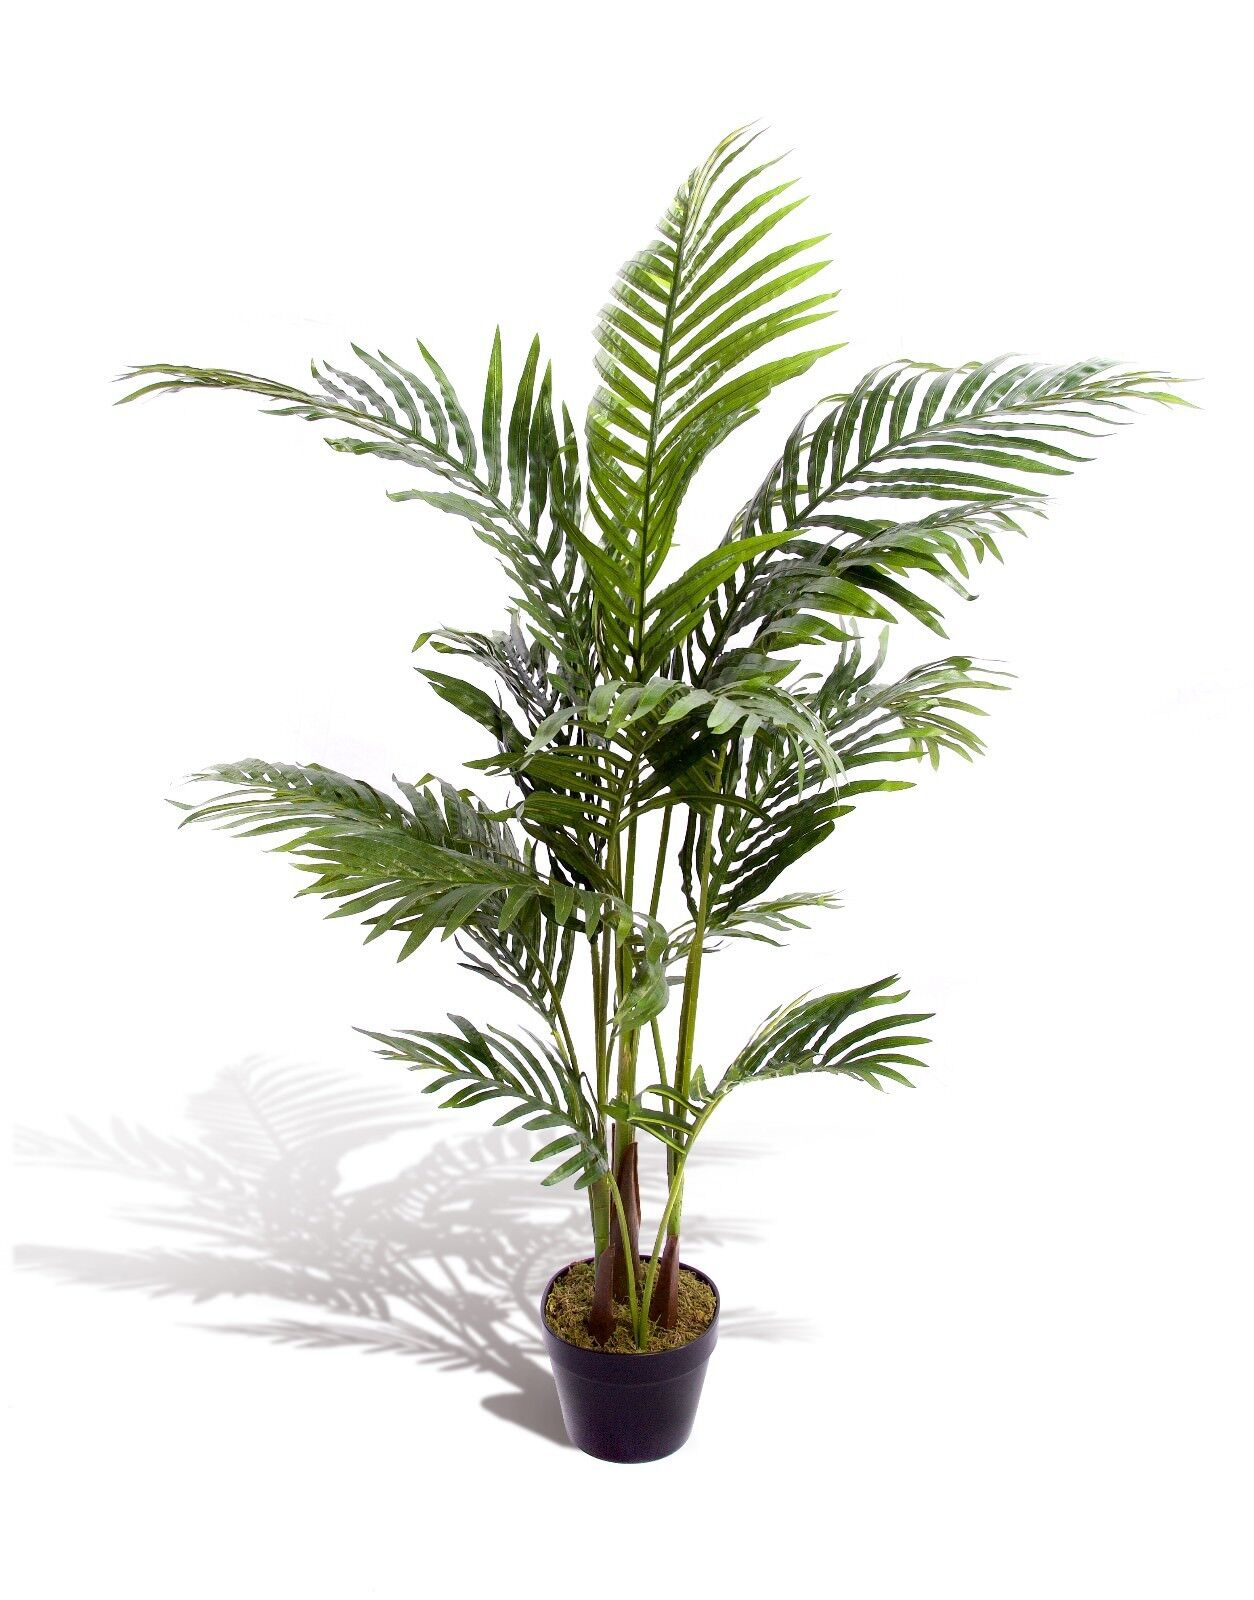 s-l1600 Palm Trees For Houseplants on palm tree bonsai, palm tree floral, palm tree evergreen, palm tree nursery, palm tree tree, palm tree wreath, palm tree food, palm tree vegetable, palm tree outdoor, palm tree seedlings, palm tree roses, palm tree planting detail, palm tree fossil, palm tree vines, palm tree bamboo, palm tree green, palm tree nature, palm tree lawn, palm tree shrub, palm tree water,